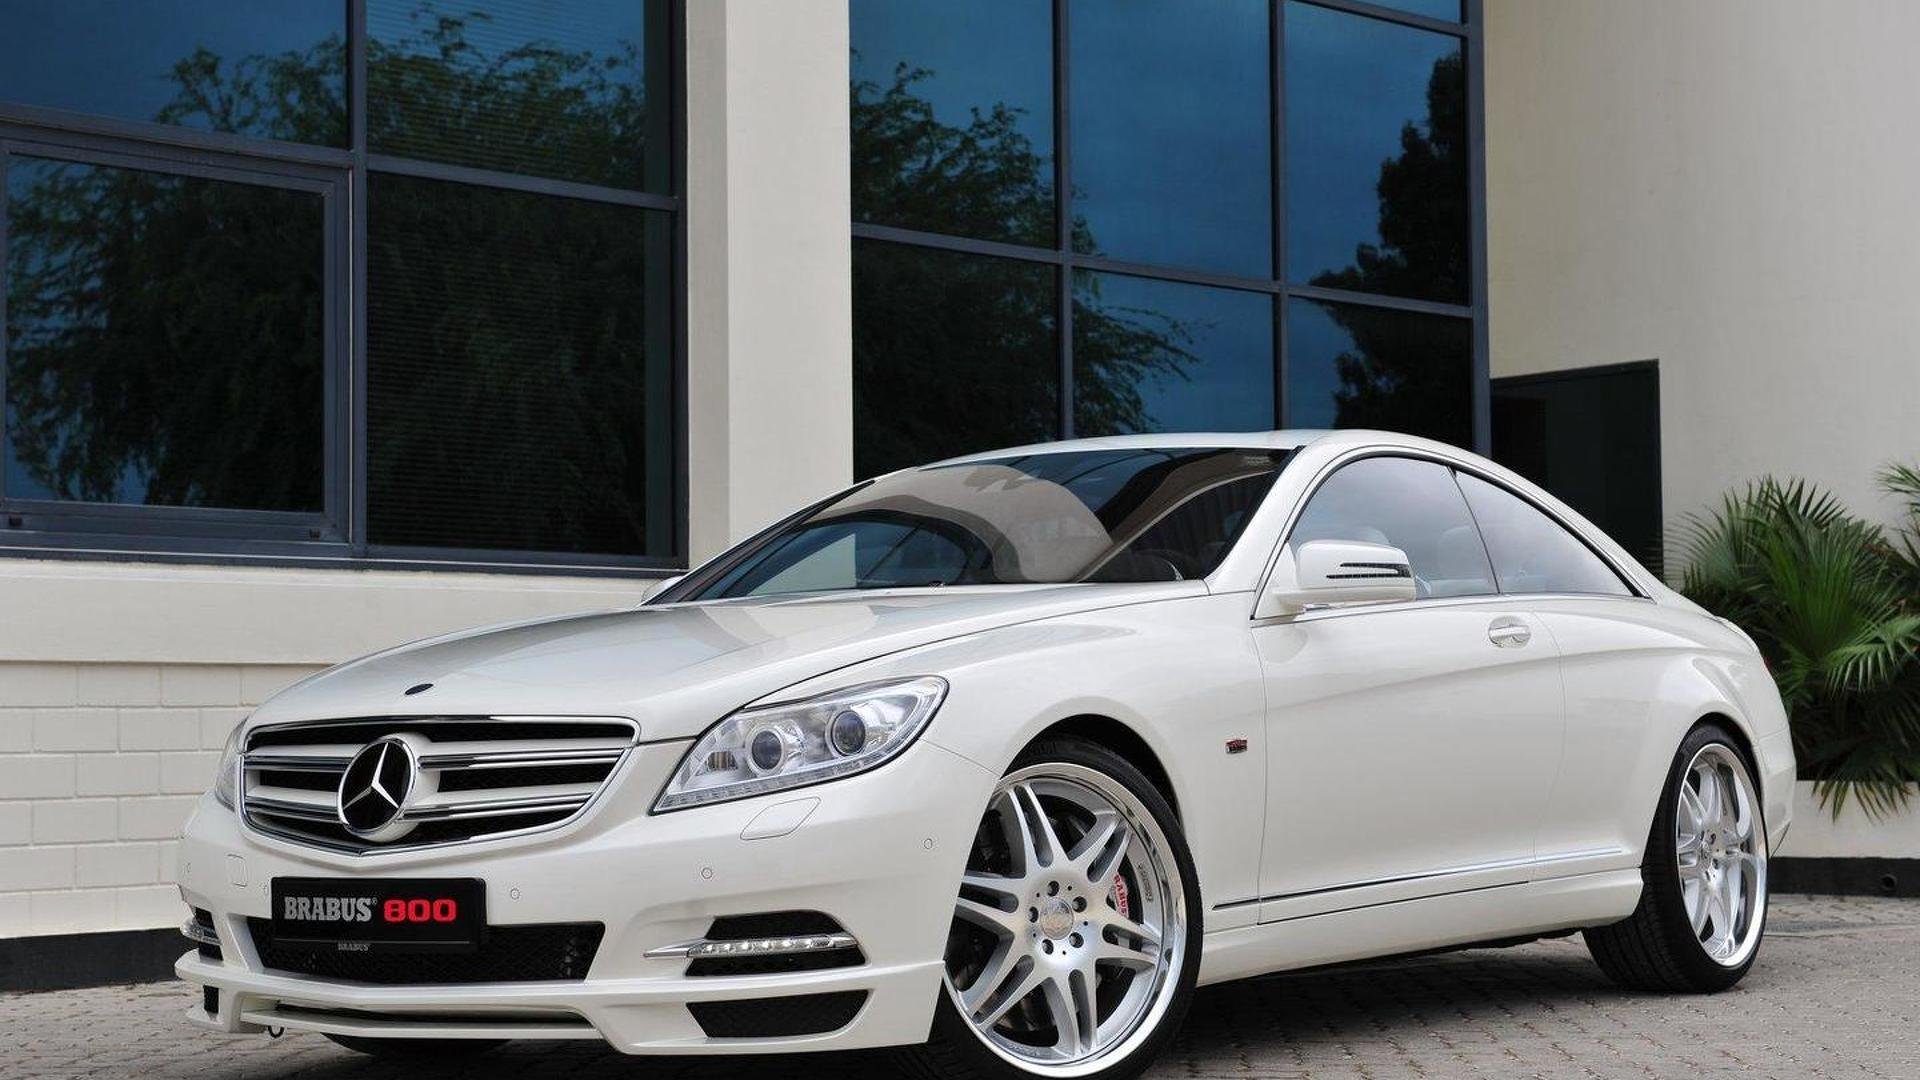 brabus 800 coupe based on the mercedes benz cl 600. Black Bedroom Furniture Sets. Home Design Ideas